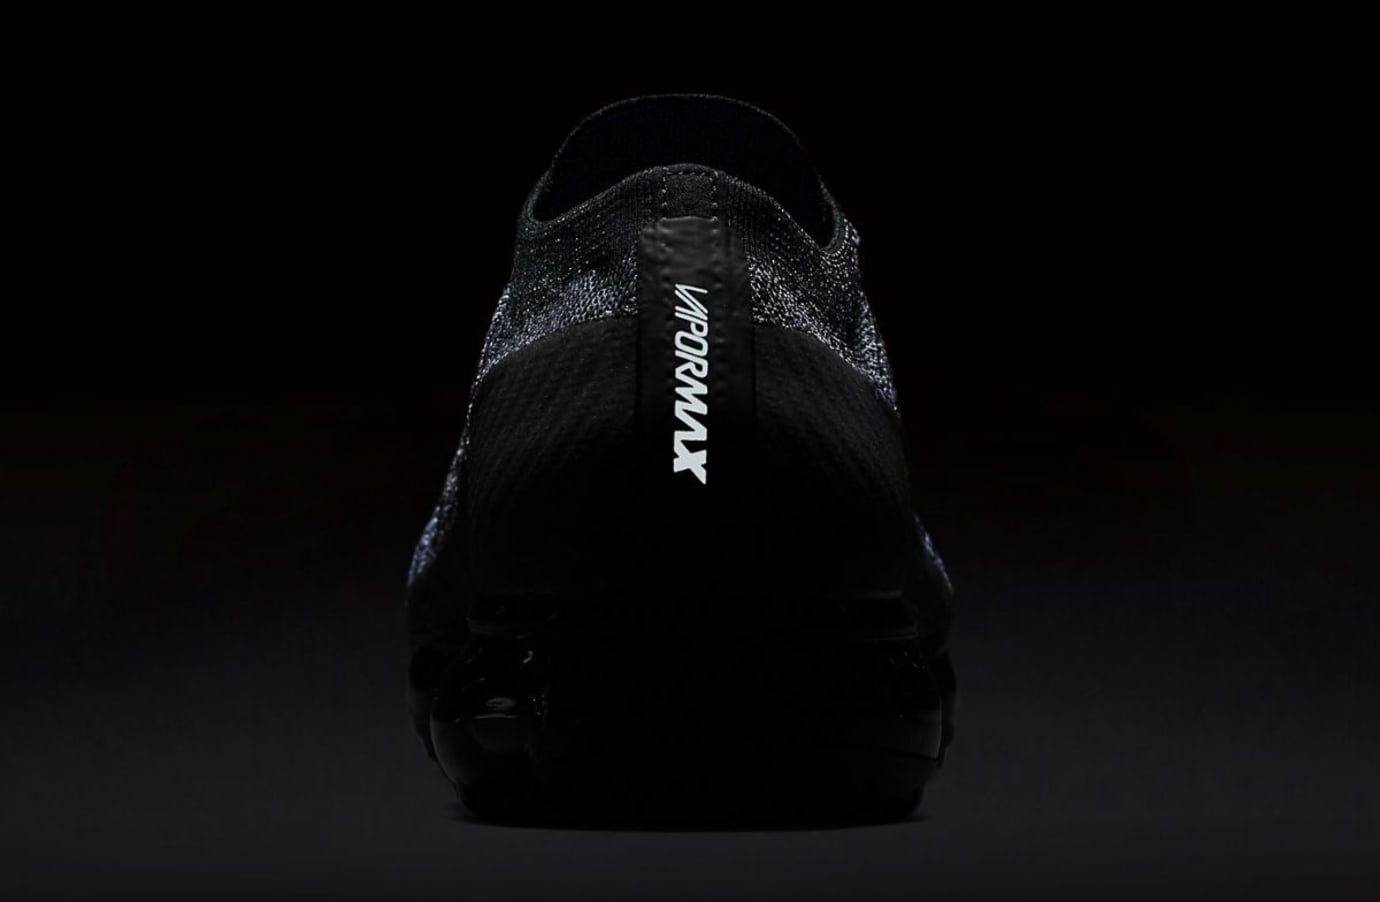 cd7e8f104f Nike Air VaporMax Oreo 2.0 Pack Release Date | Sole Collector